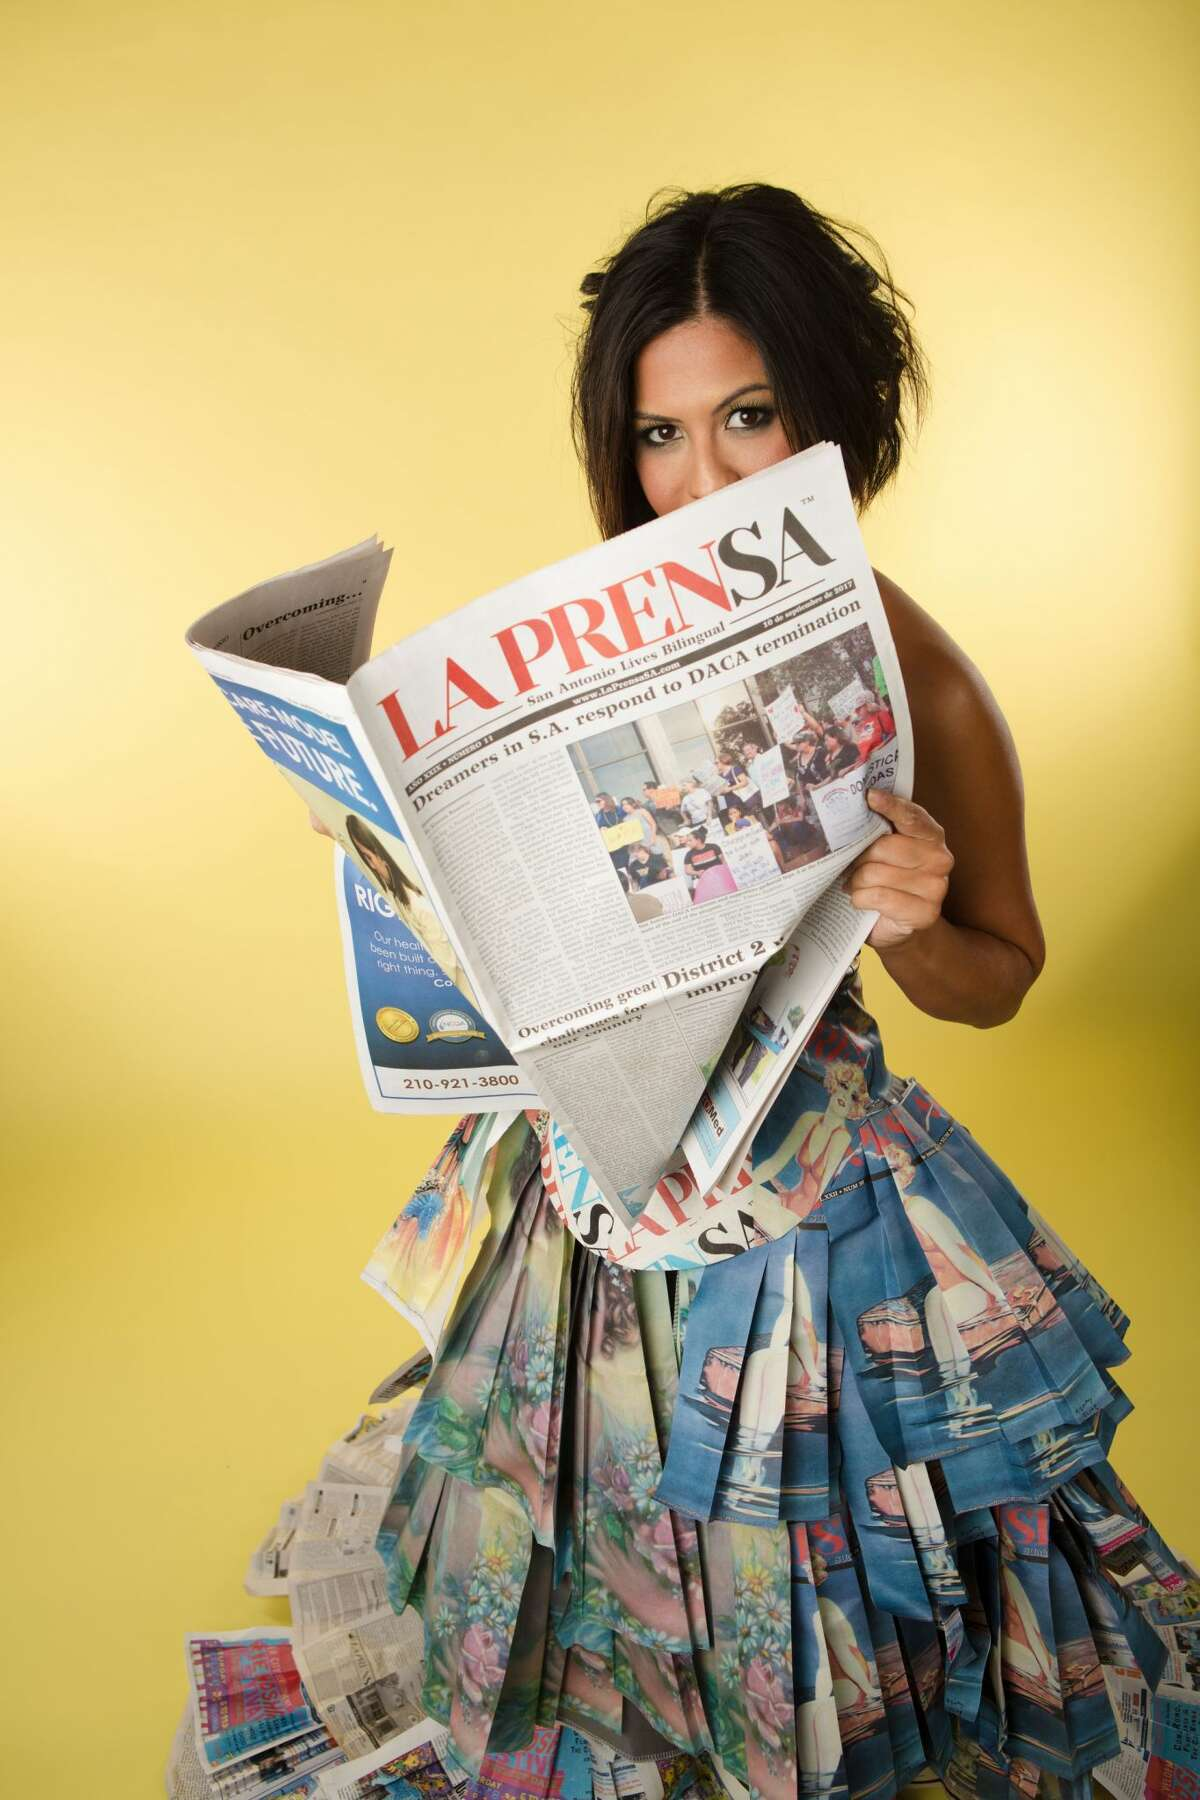 Nina Duran, daughter of late La Prensa publisher Tino Duran, wearing a dress made by Susie Hamilton from pages of the newspaper.